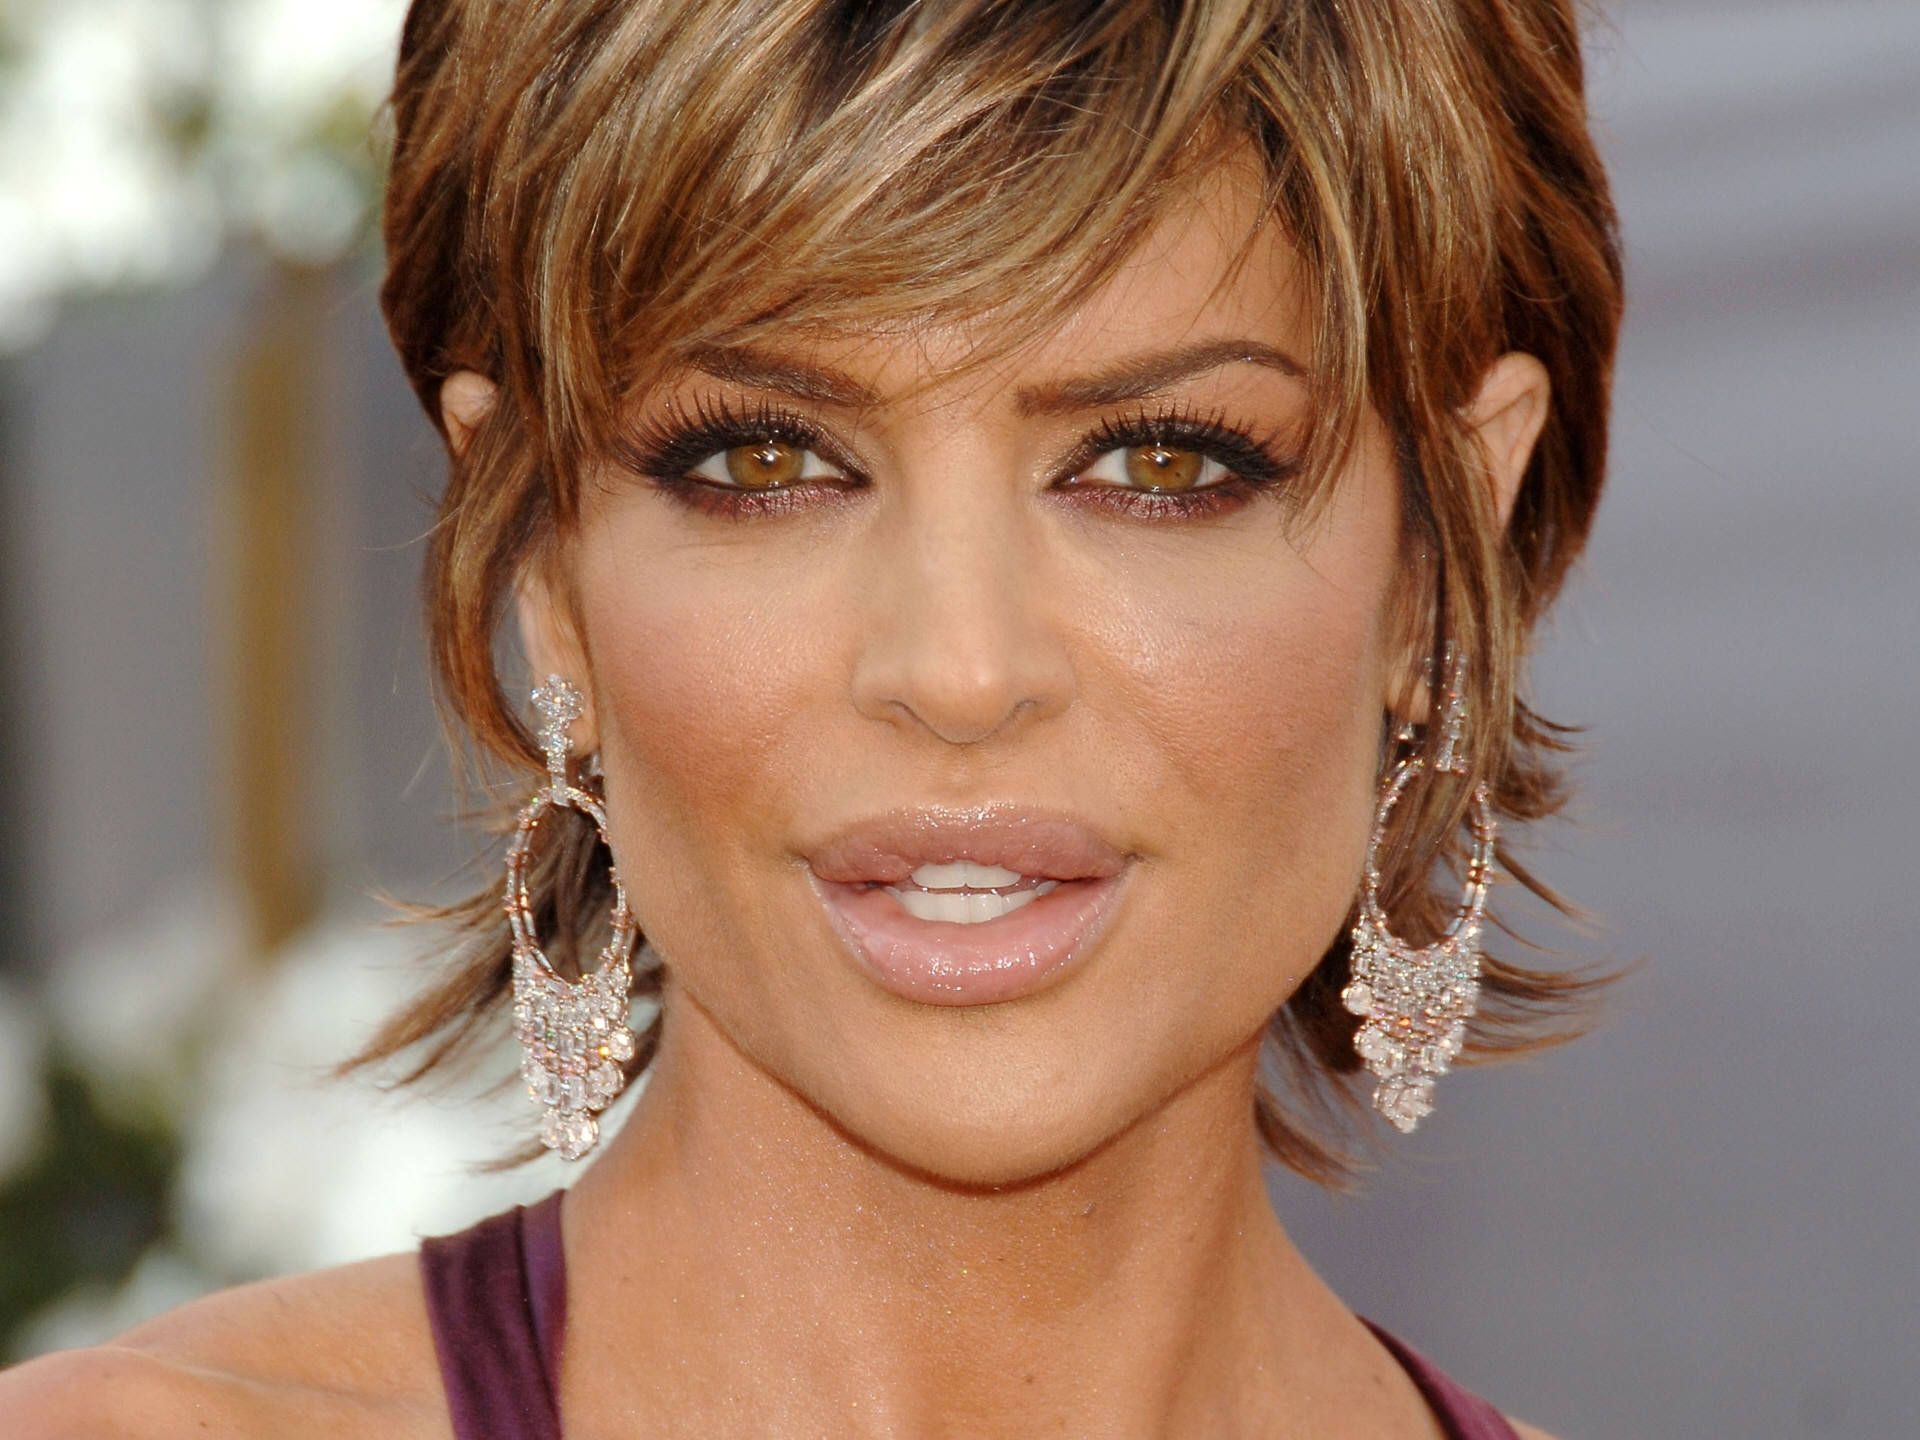 Lisa Rinna Hairstyles Lisa Rinna By Fspinks On Pinterest Lisa Rinna Actresses And